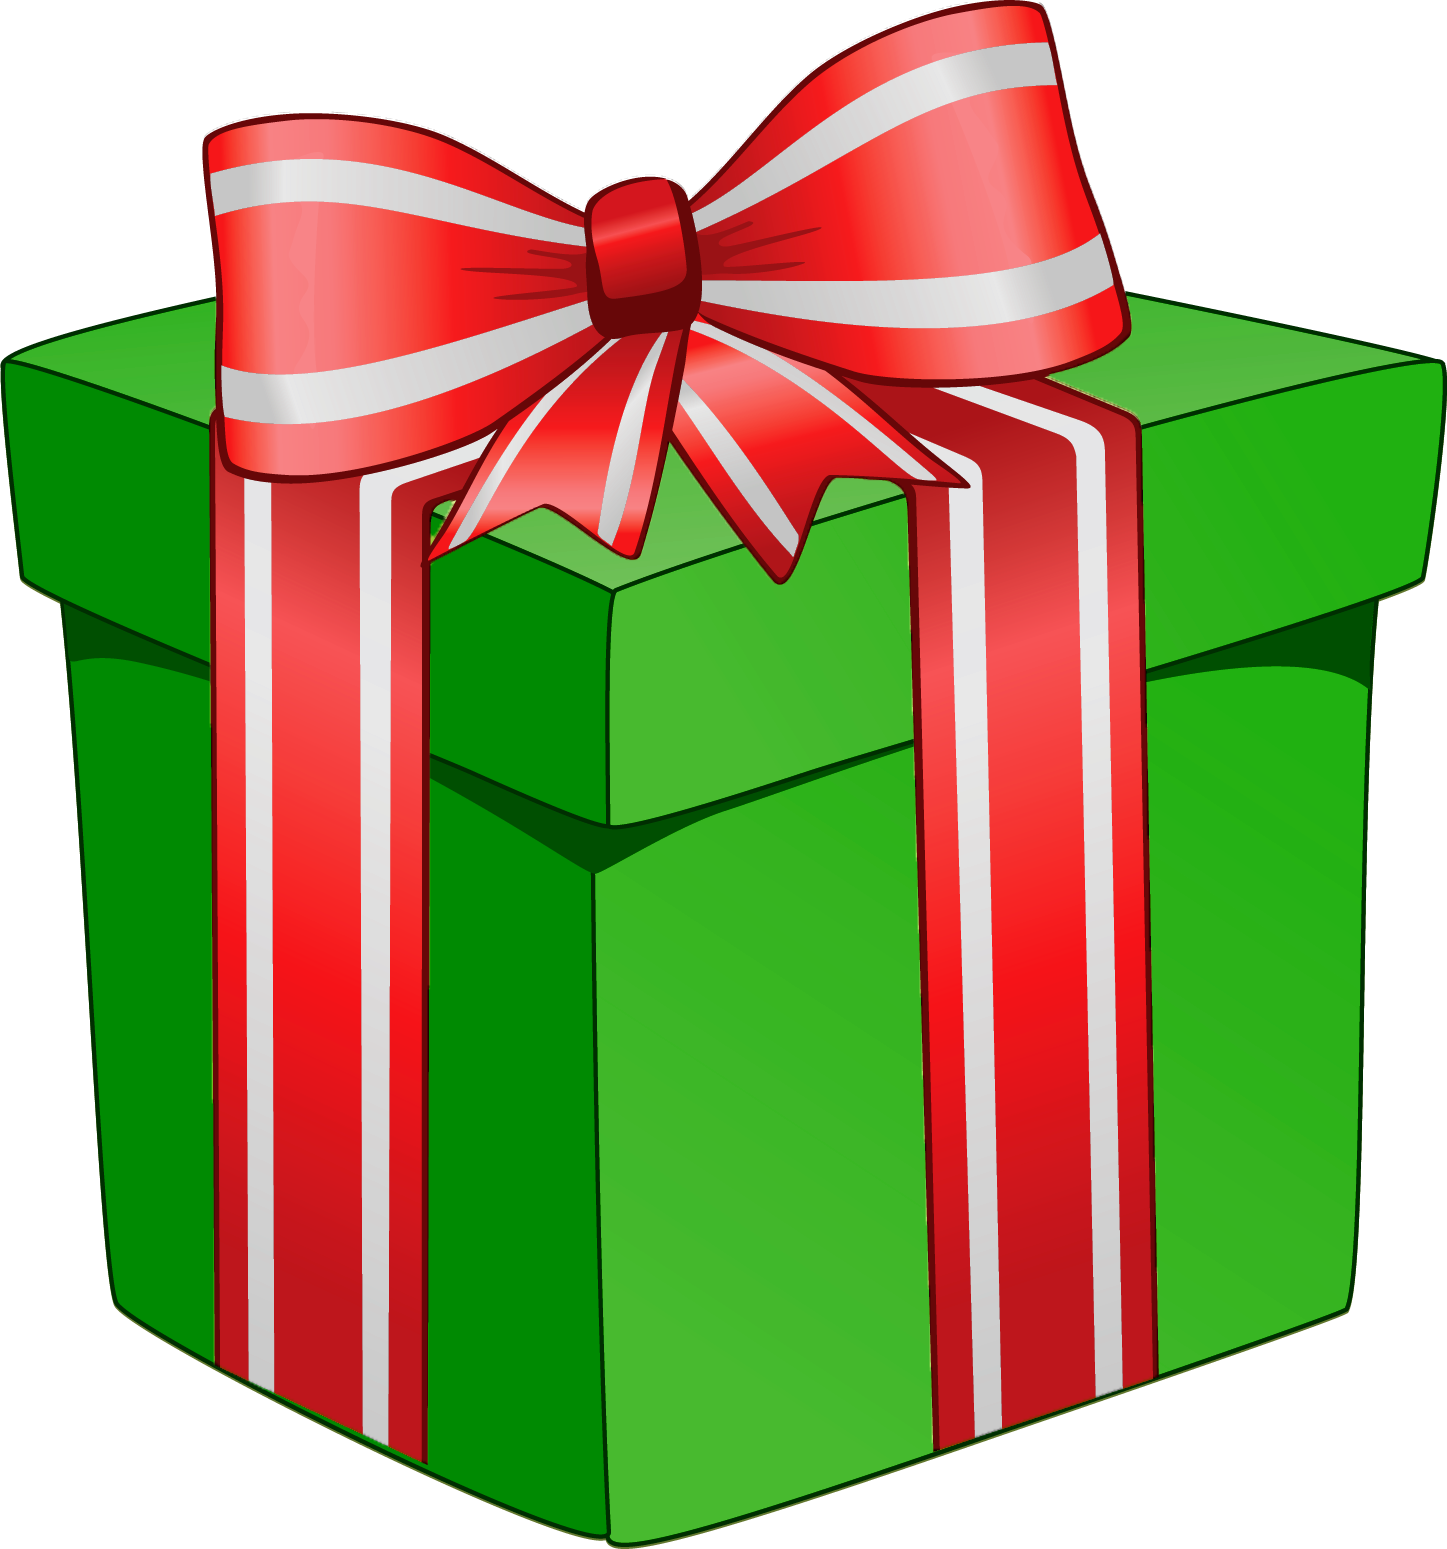 Gift clipart. Box